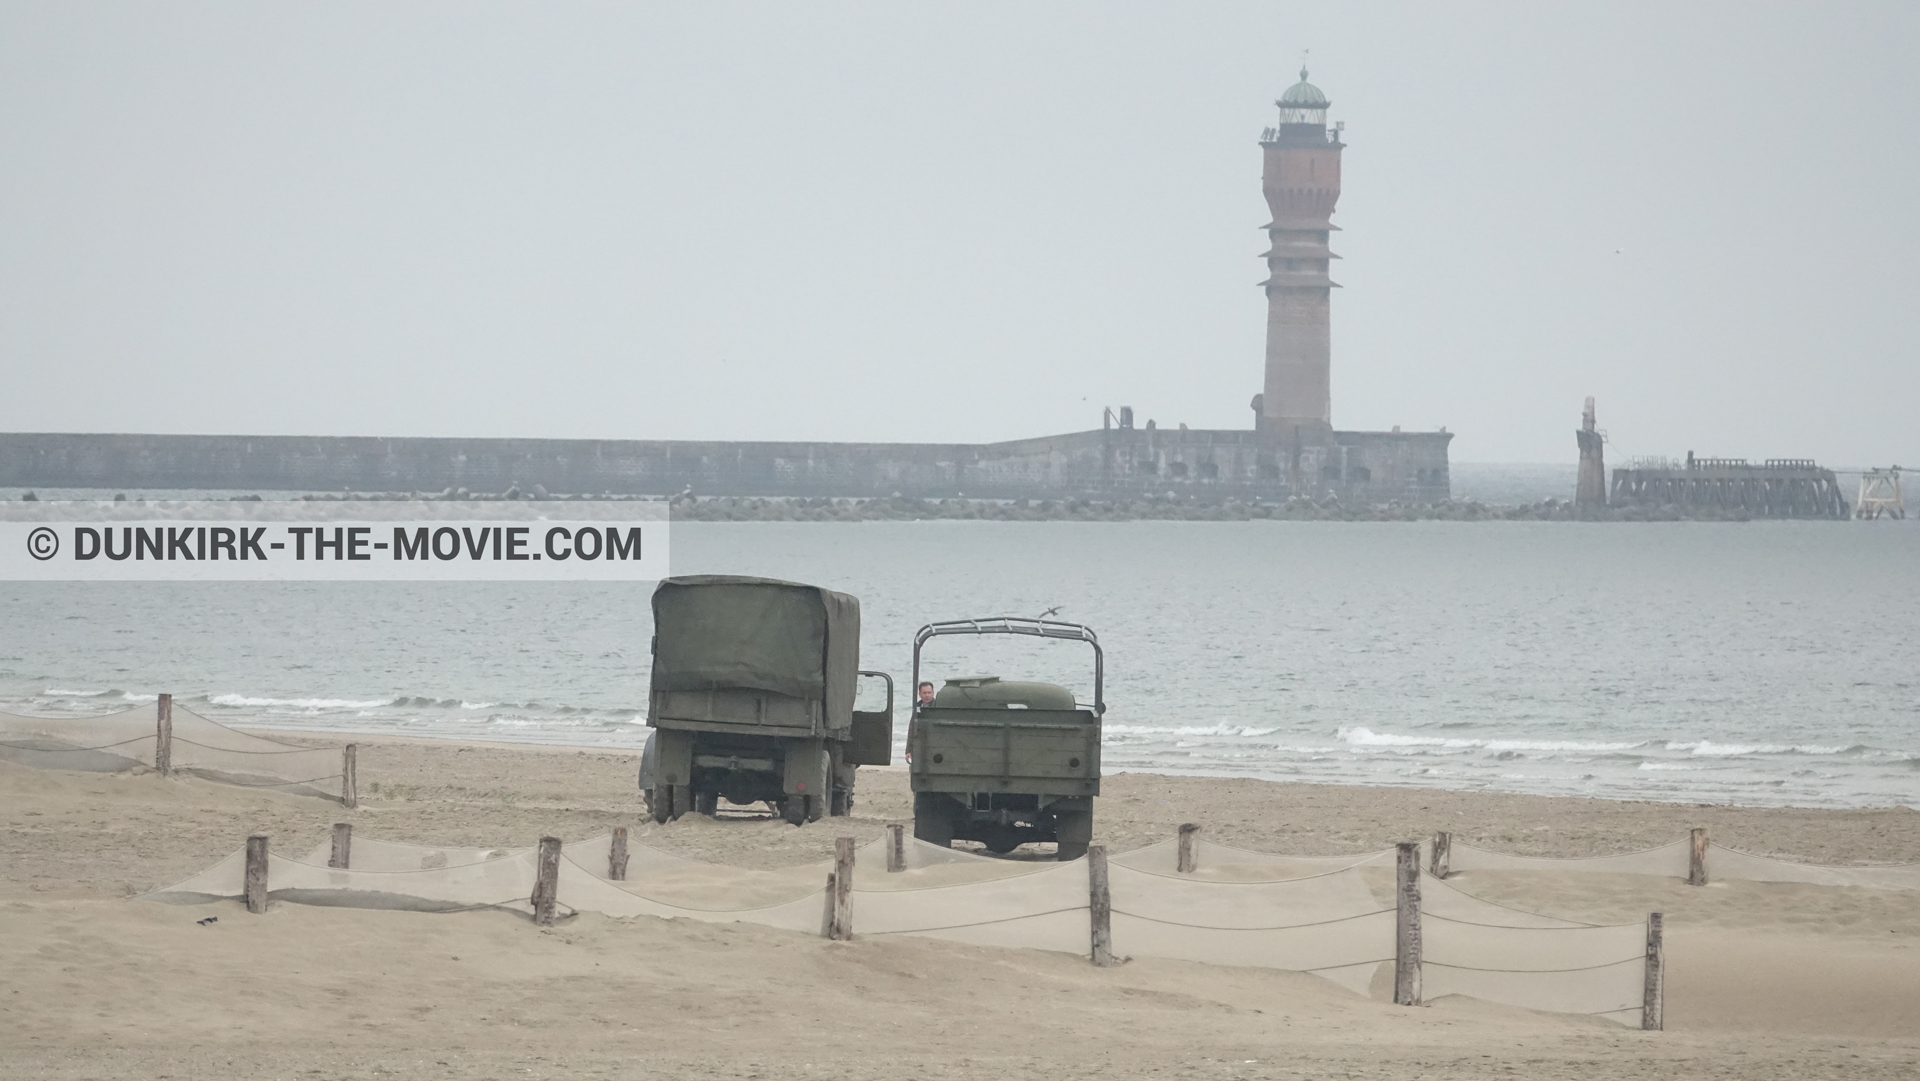 51 photos of truck during the shooting of the movie dunkirk. Black Bedroom Furniture Sets. Home Design Ideas